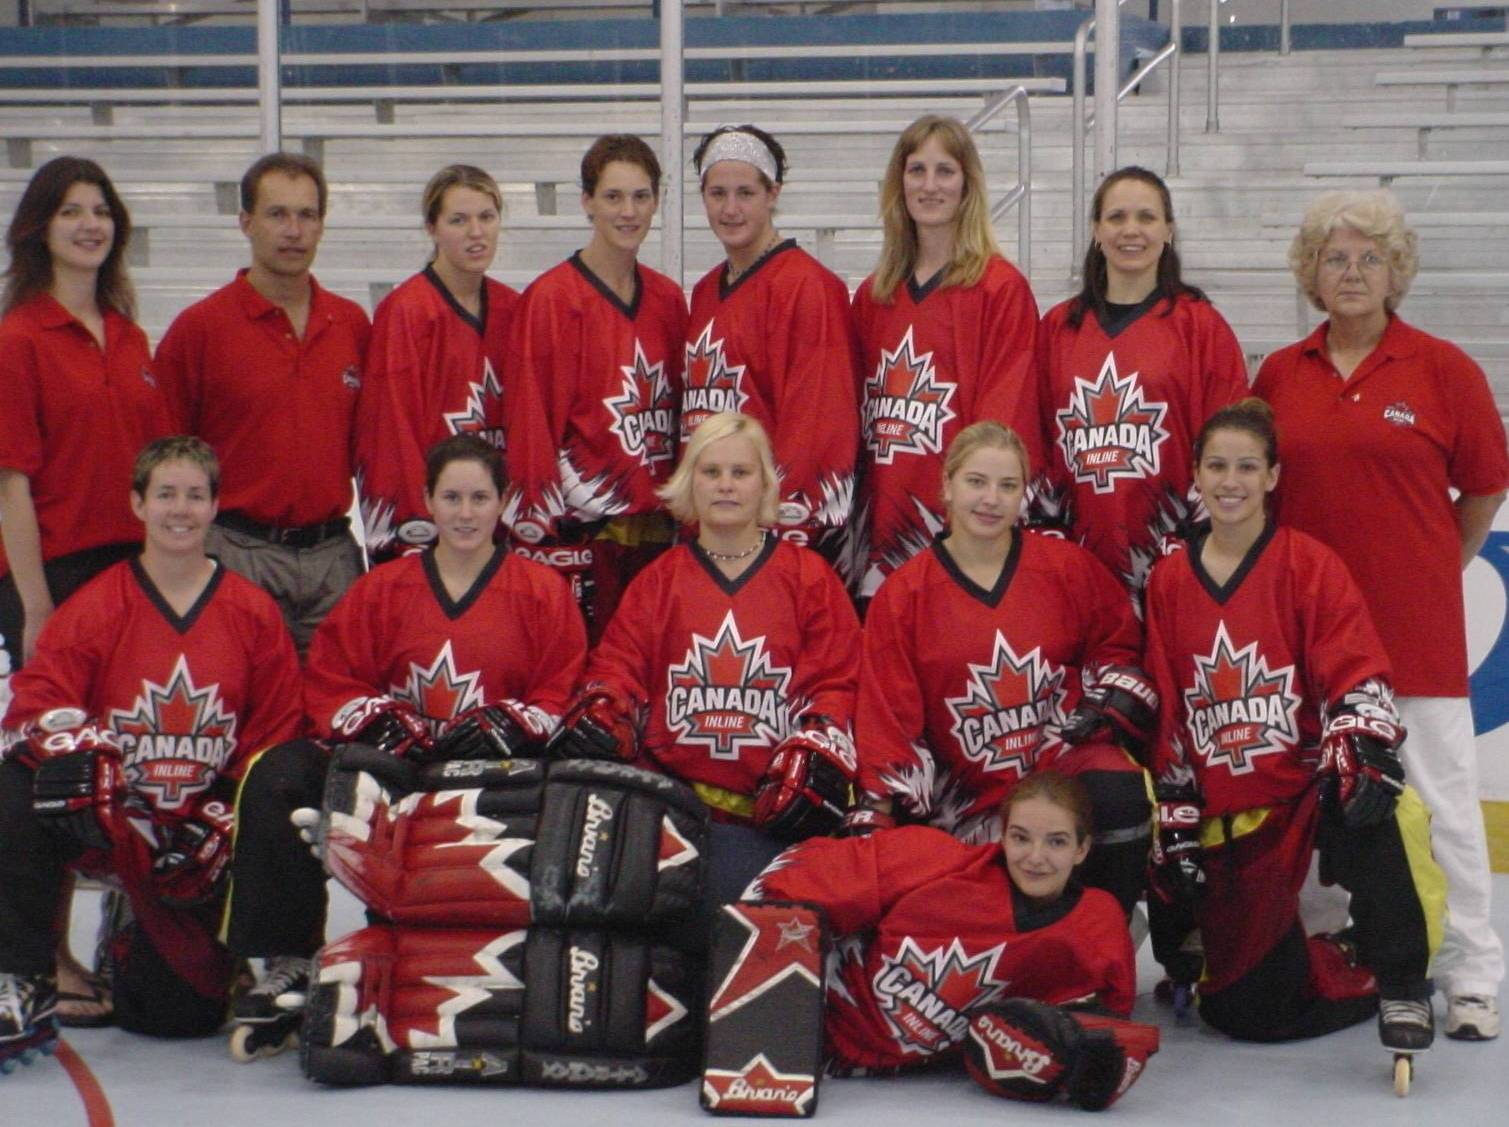 211da97bcb0 And here are a couple from the 2002 Women s World Inline Hockey  Championship.